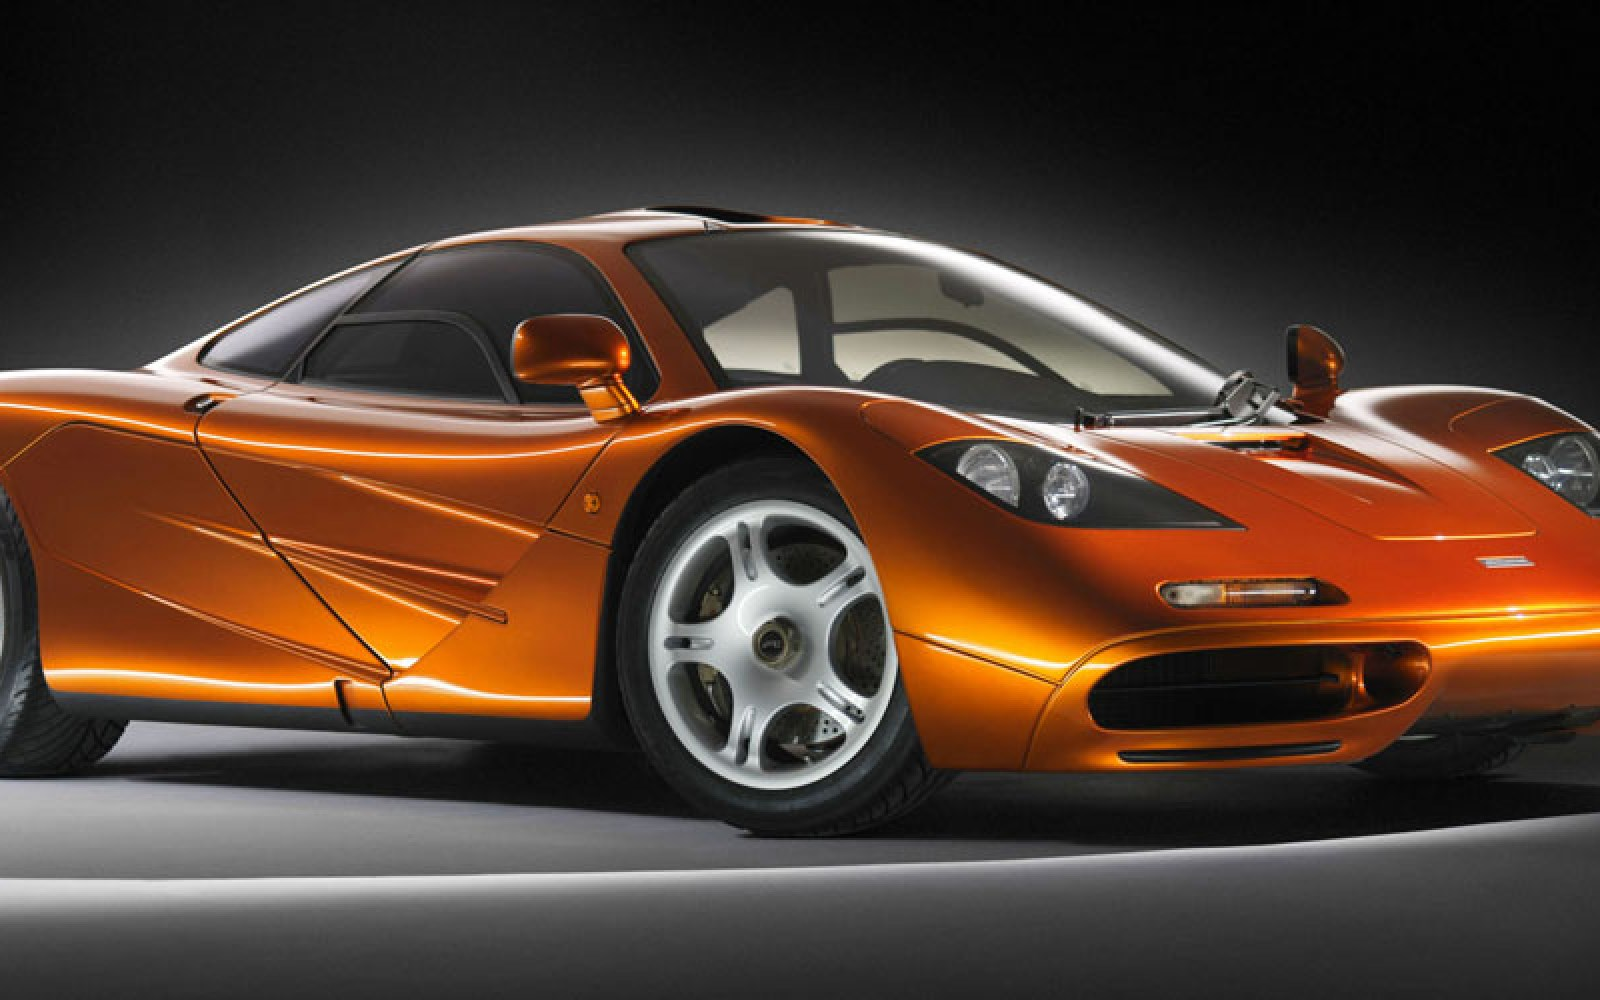 Supercar maker McLaren says Apple did meet with them, but didn't bid for the business